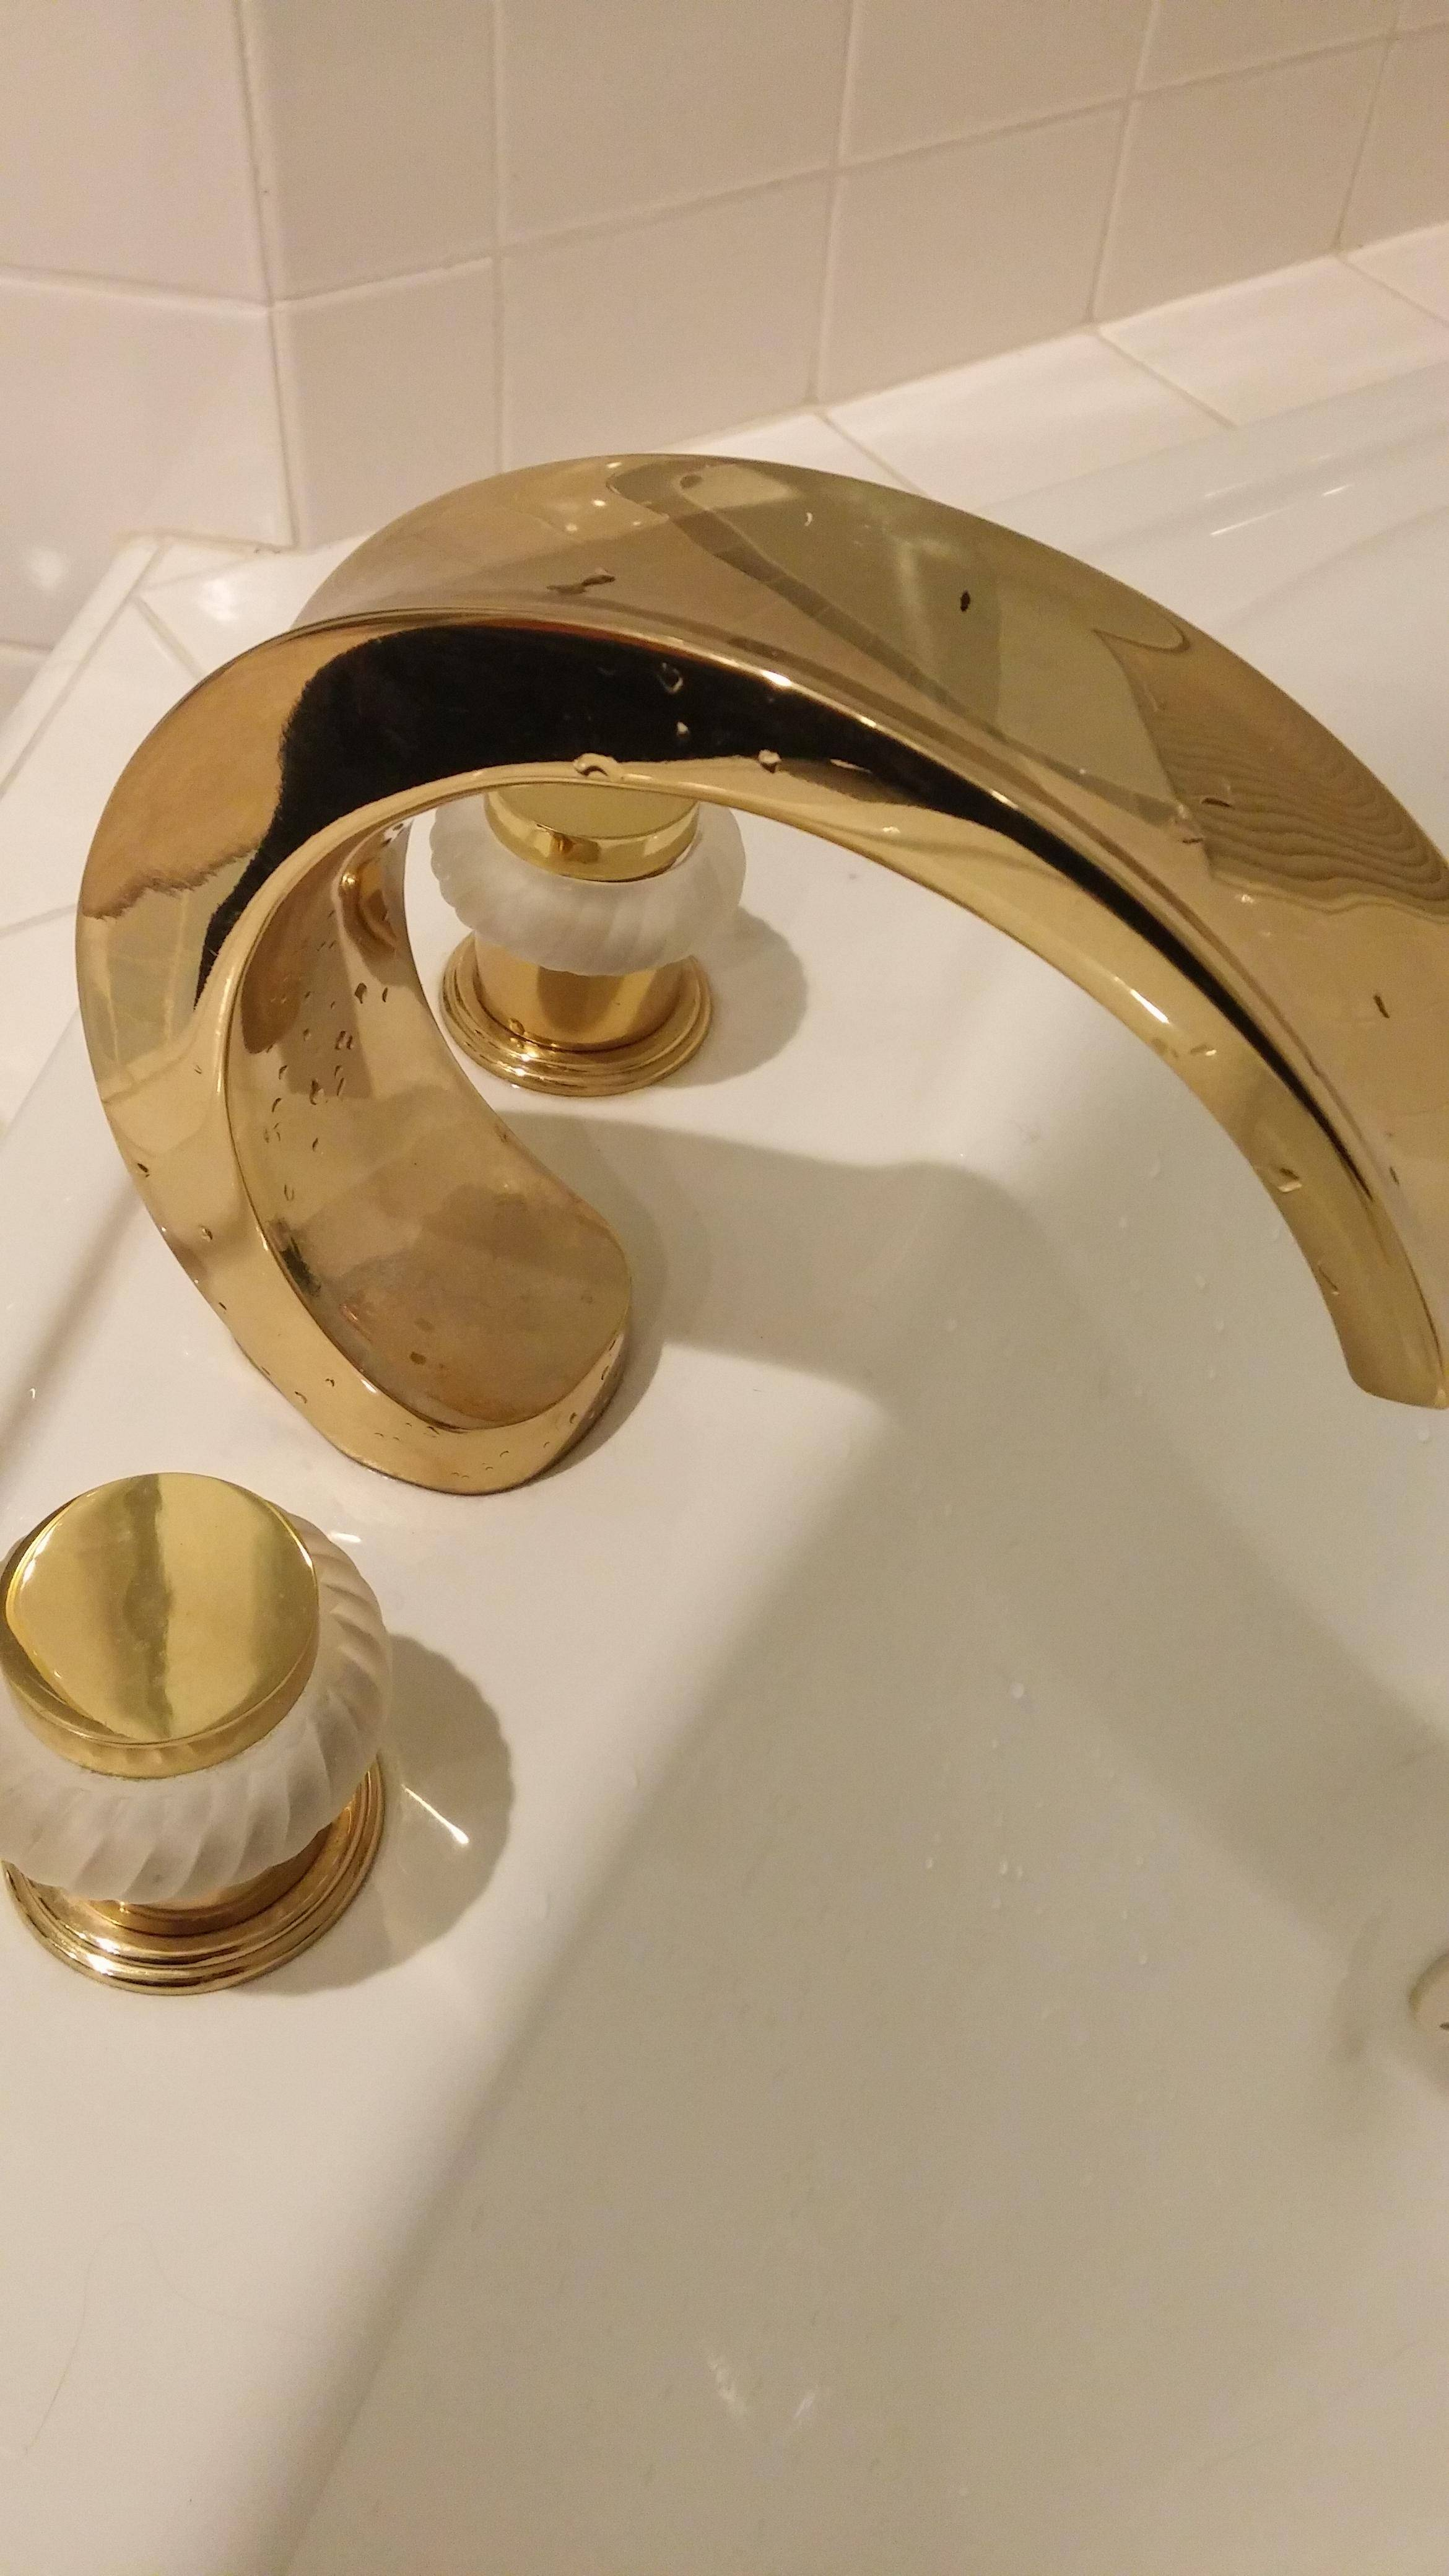 Plumbing How Do I Replace Shower Tub Handles Spouts